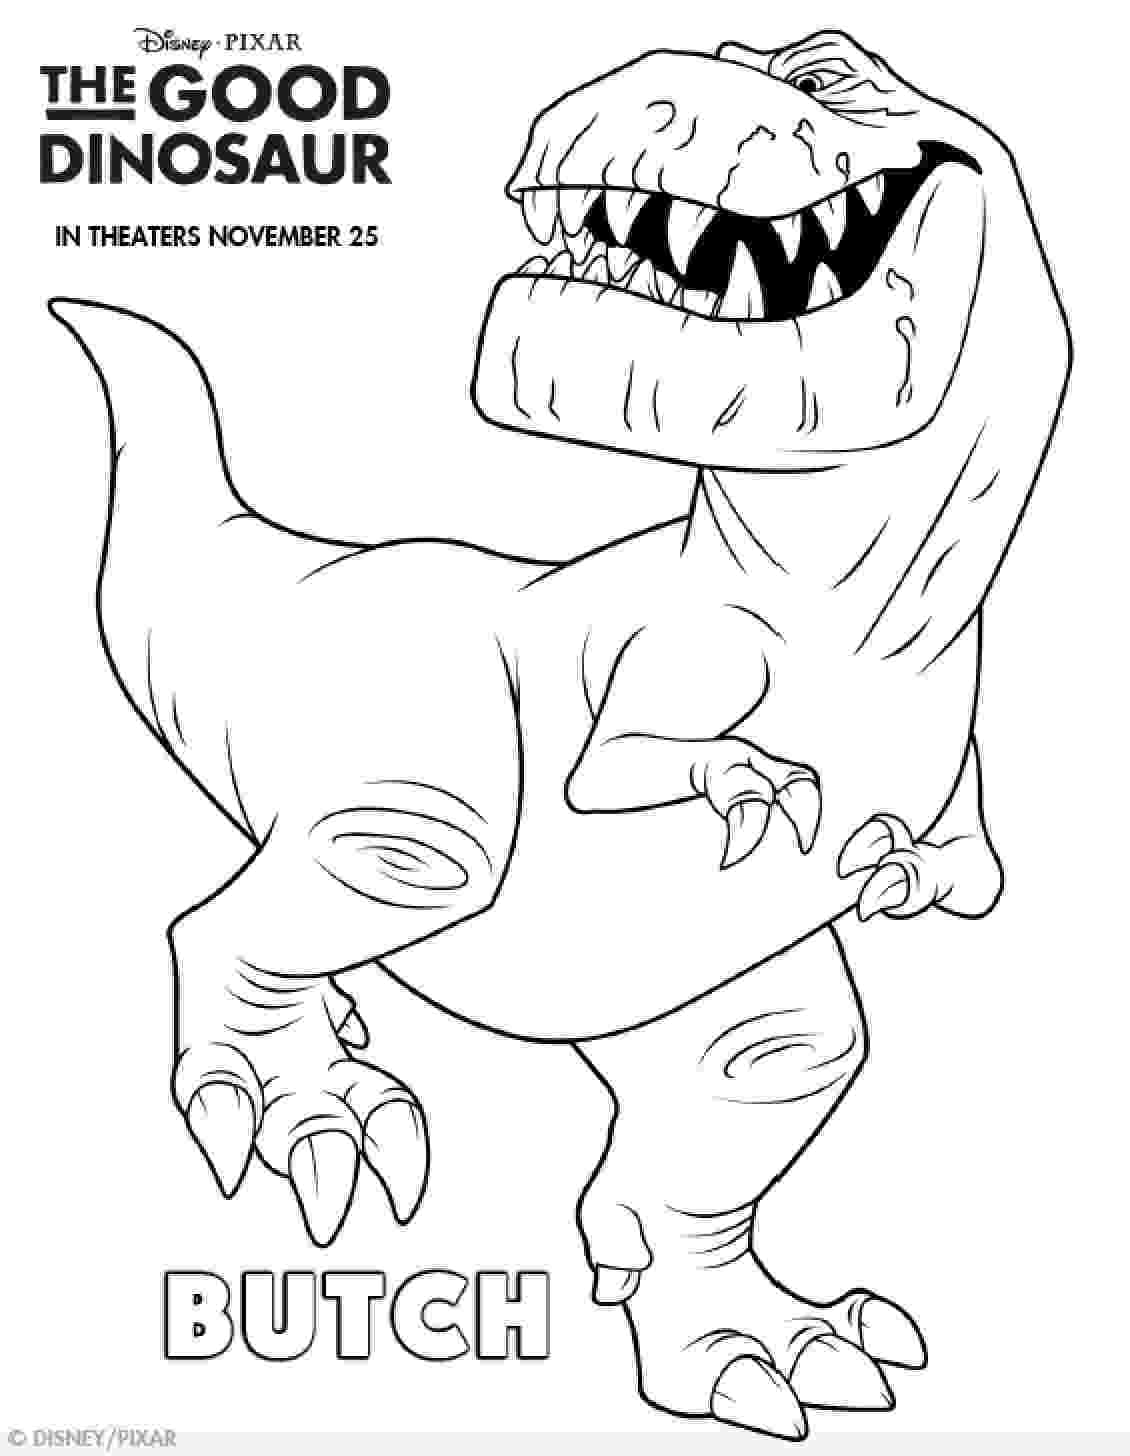 dinosaur coloring pages for toddlers דף צביעה דינוזאור רקס dinosaur coloring pages for pages toddlers coloring dinosaur